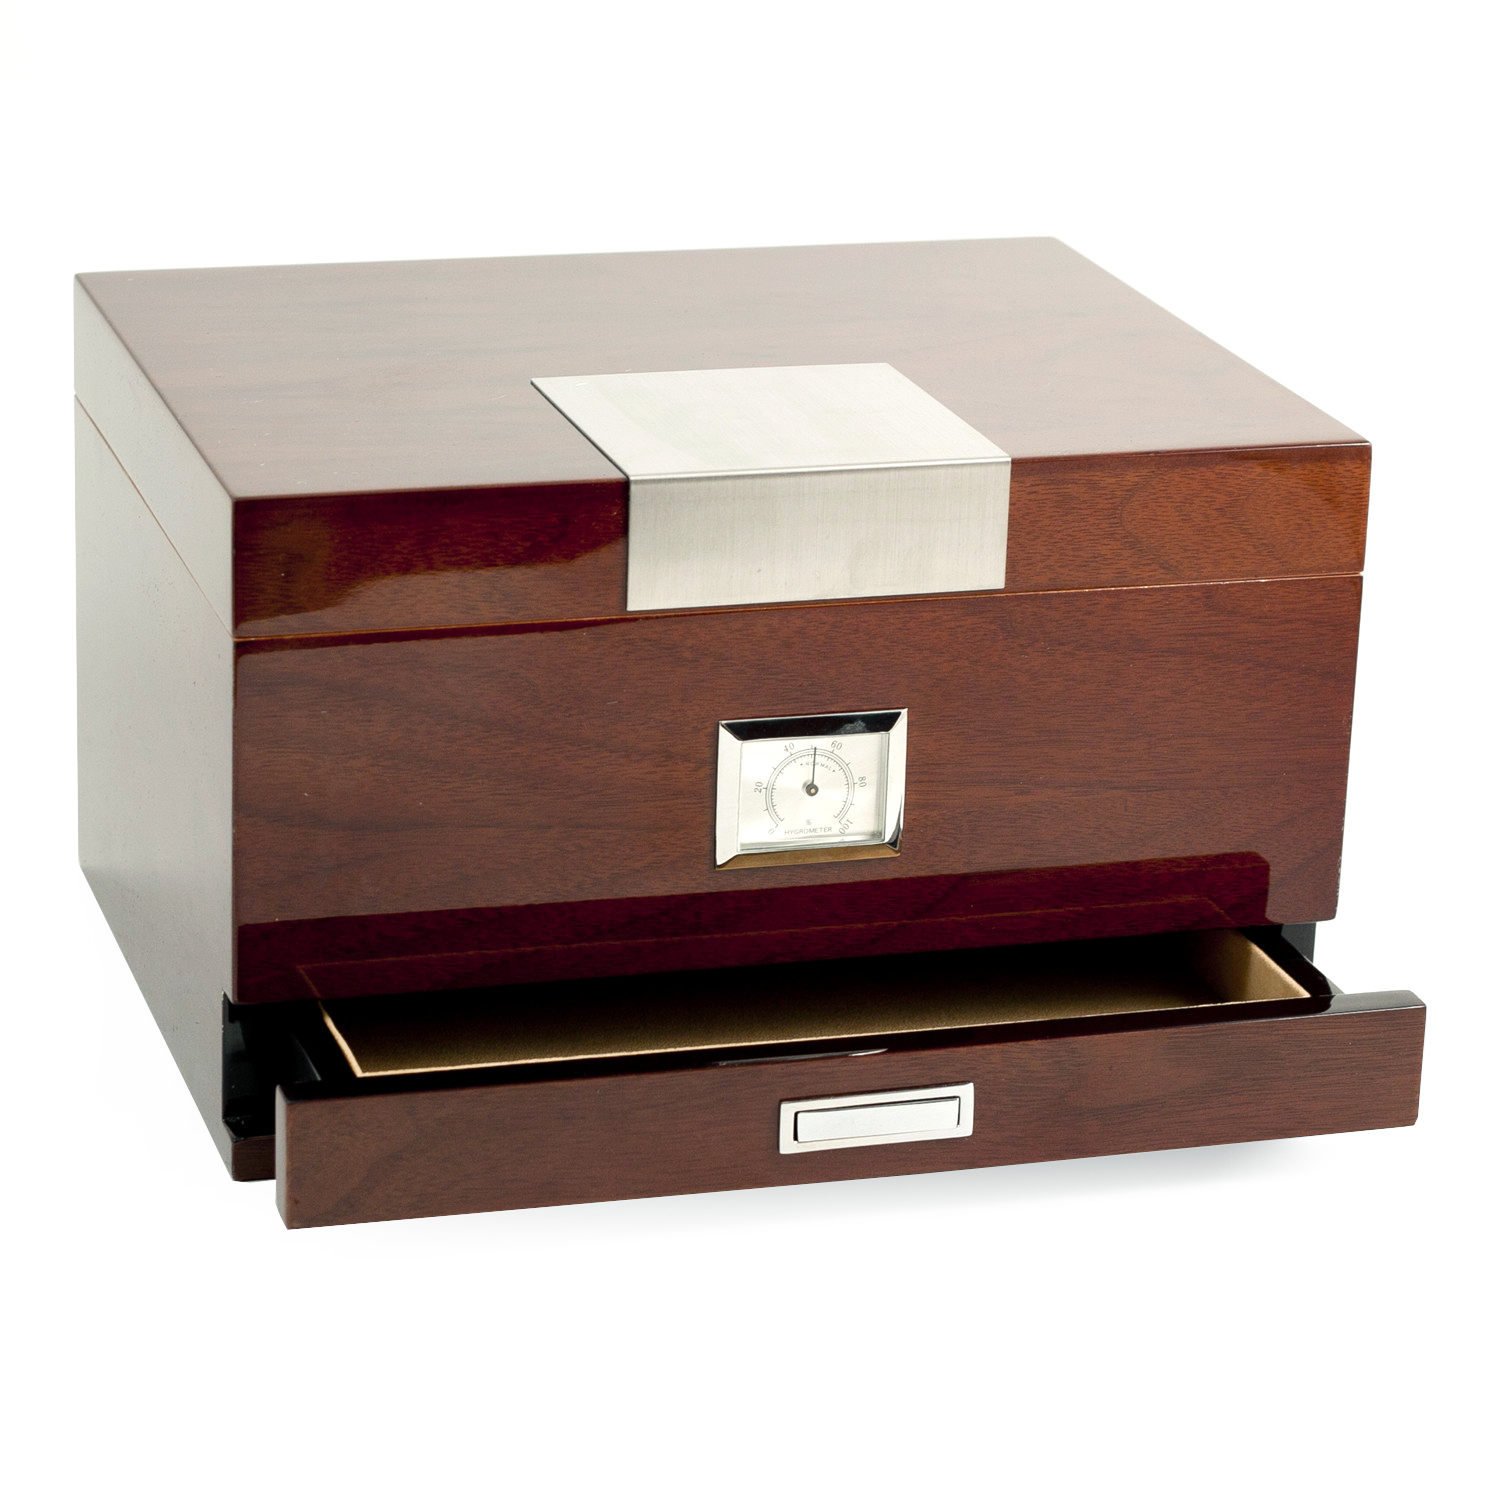 60 Cigar Walnut Humidor